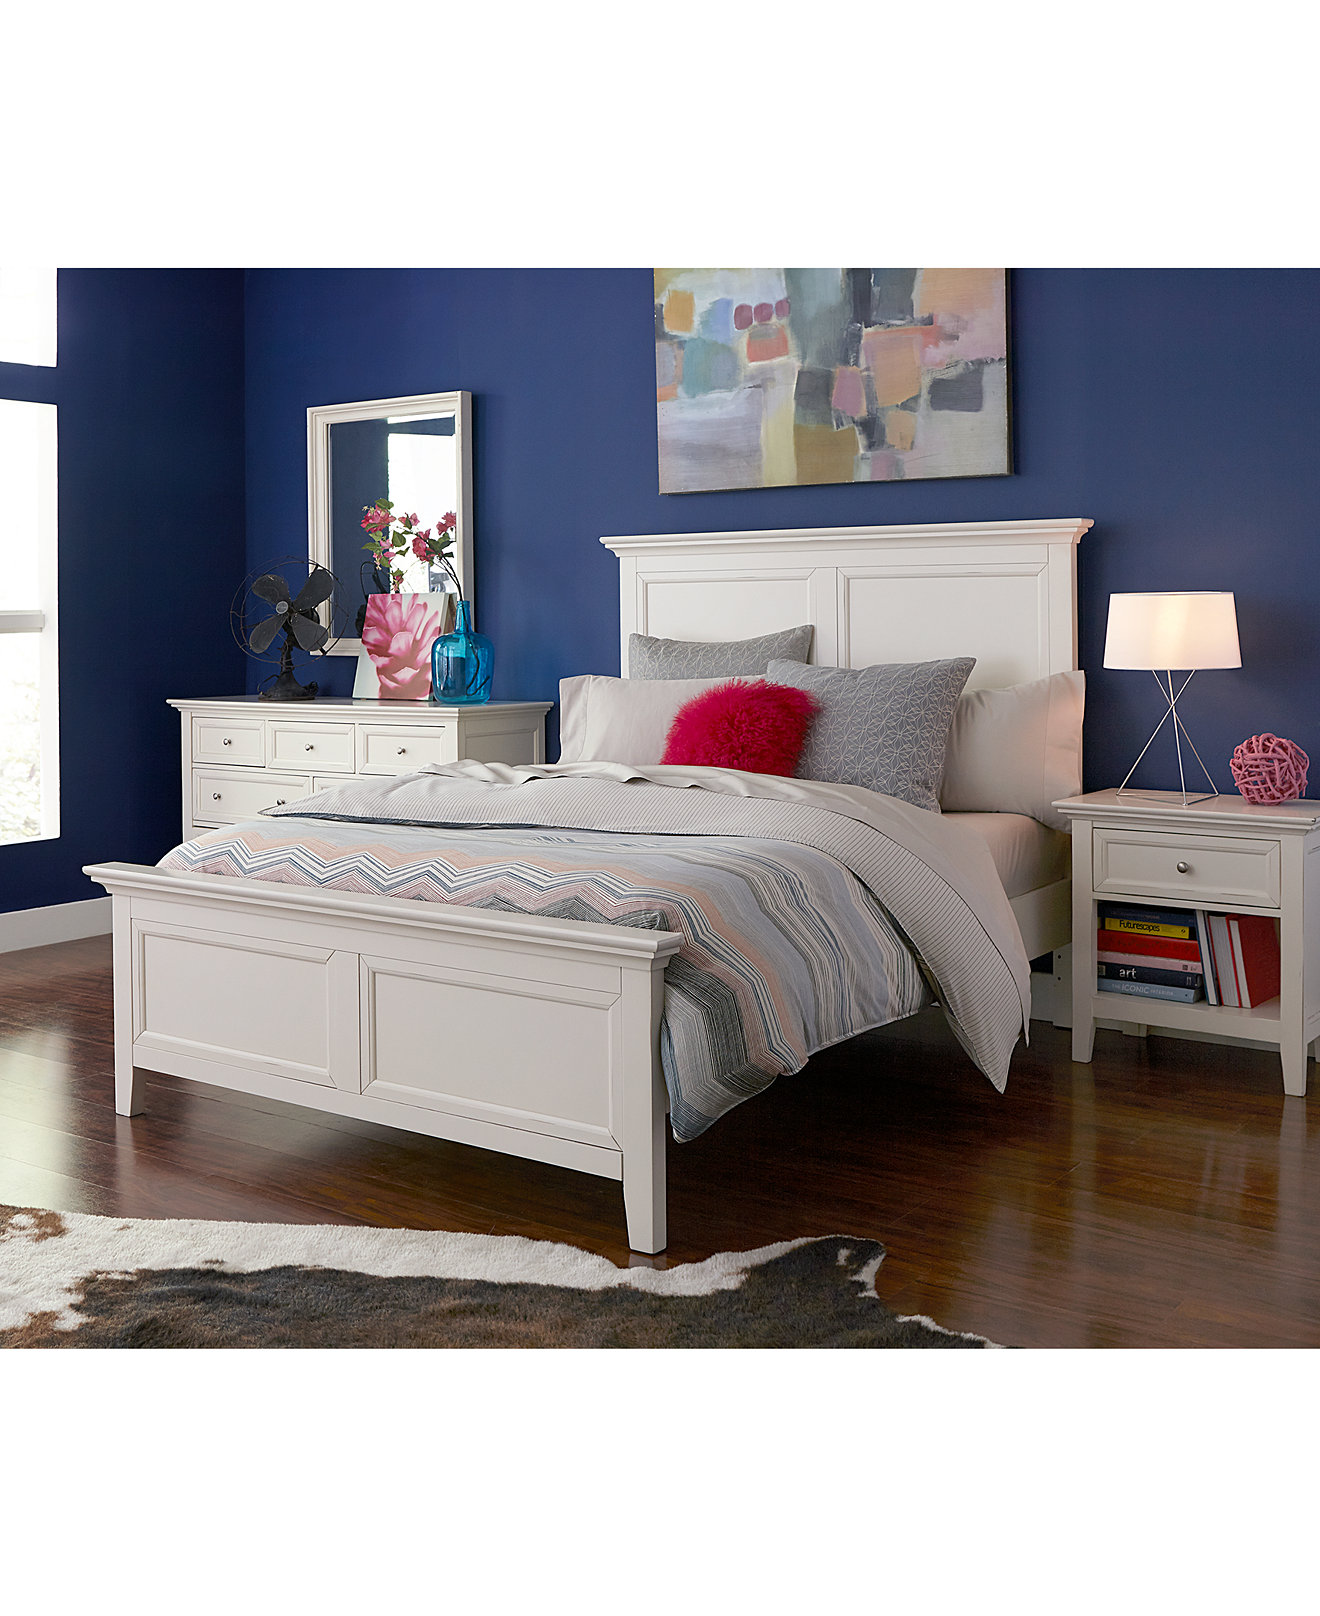 stylecraft bedroom furniture - Shop for and Buy stylecraft bedroom ...